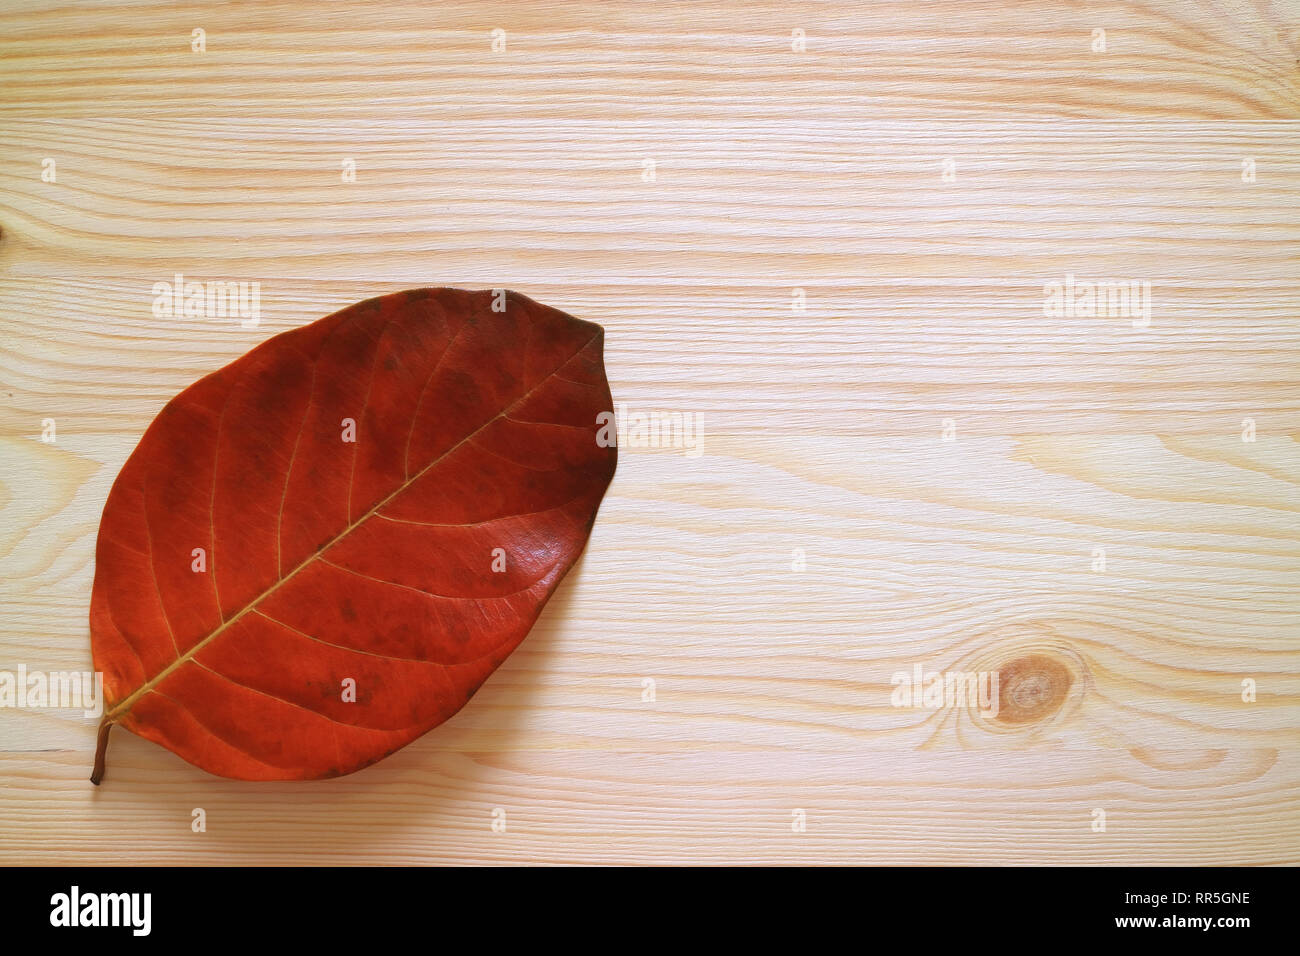 Red autumn leaf isolated on light brown wooden table with free space for text or design - Stock Image